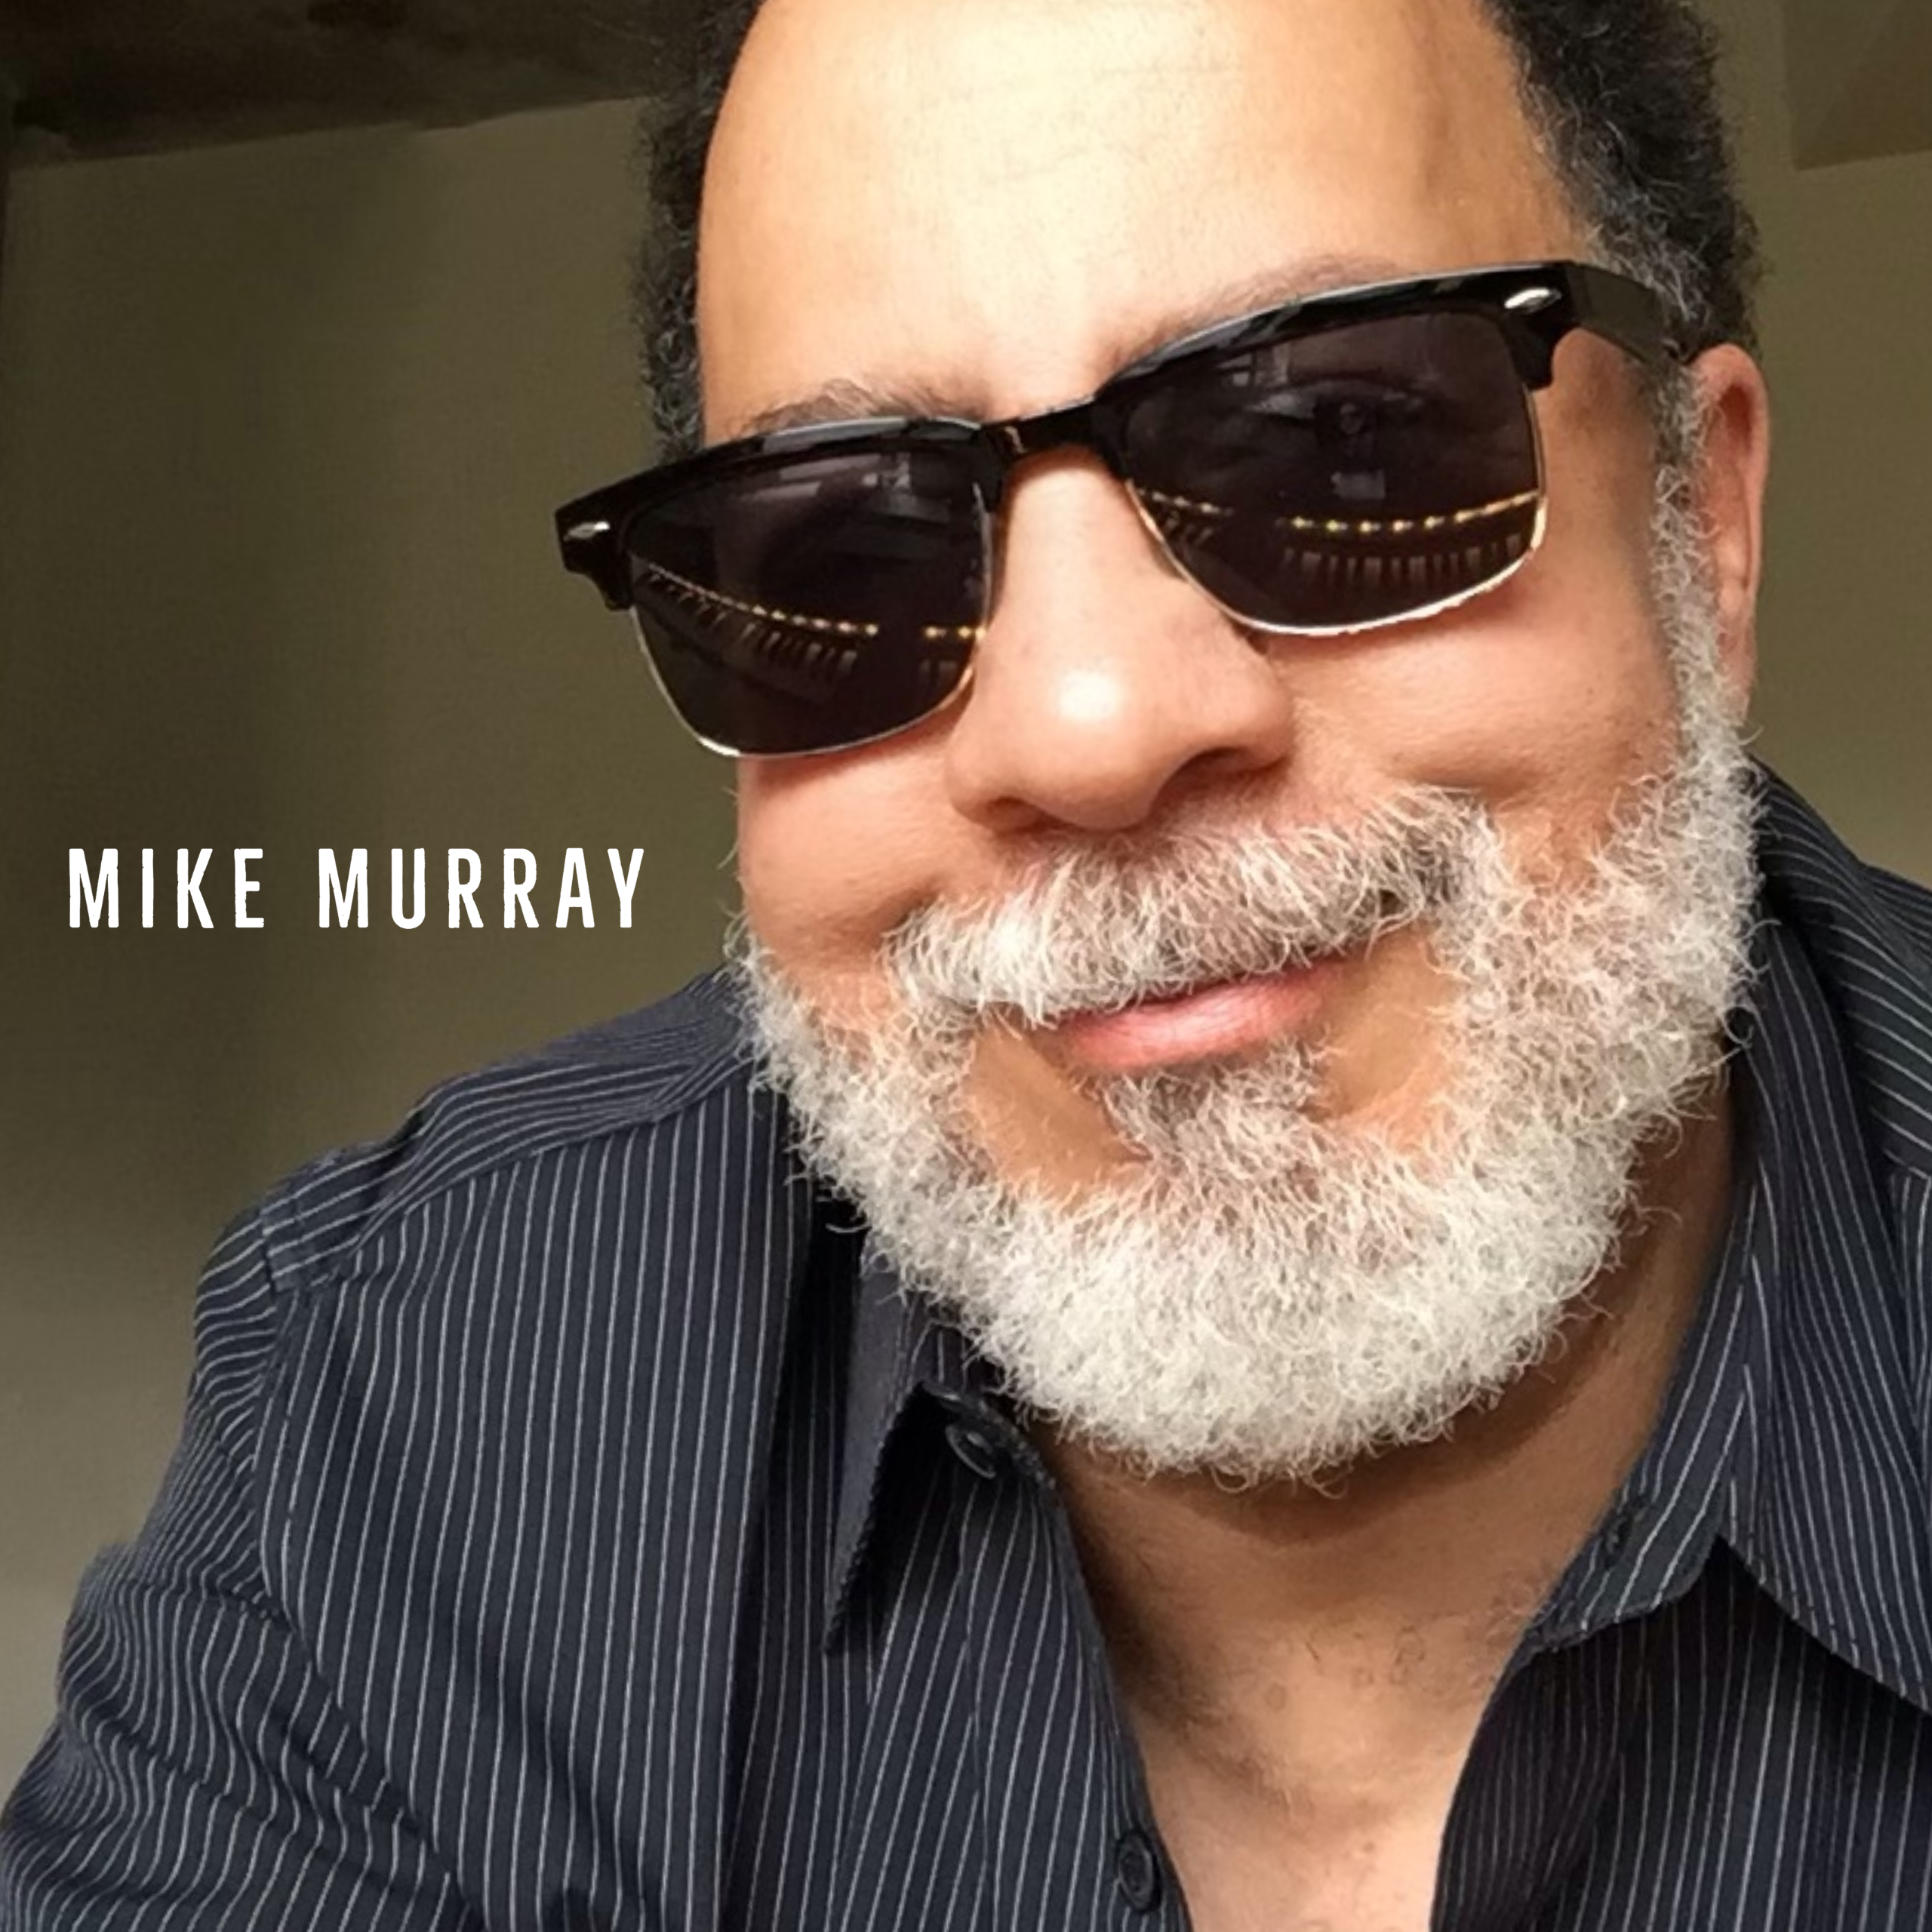 Mike Murray